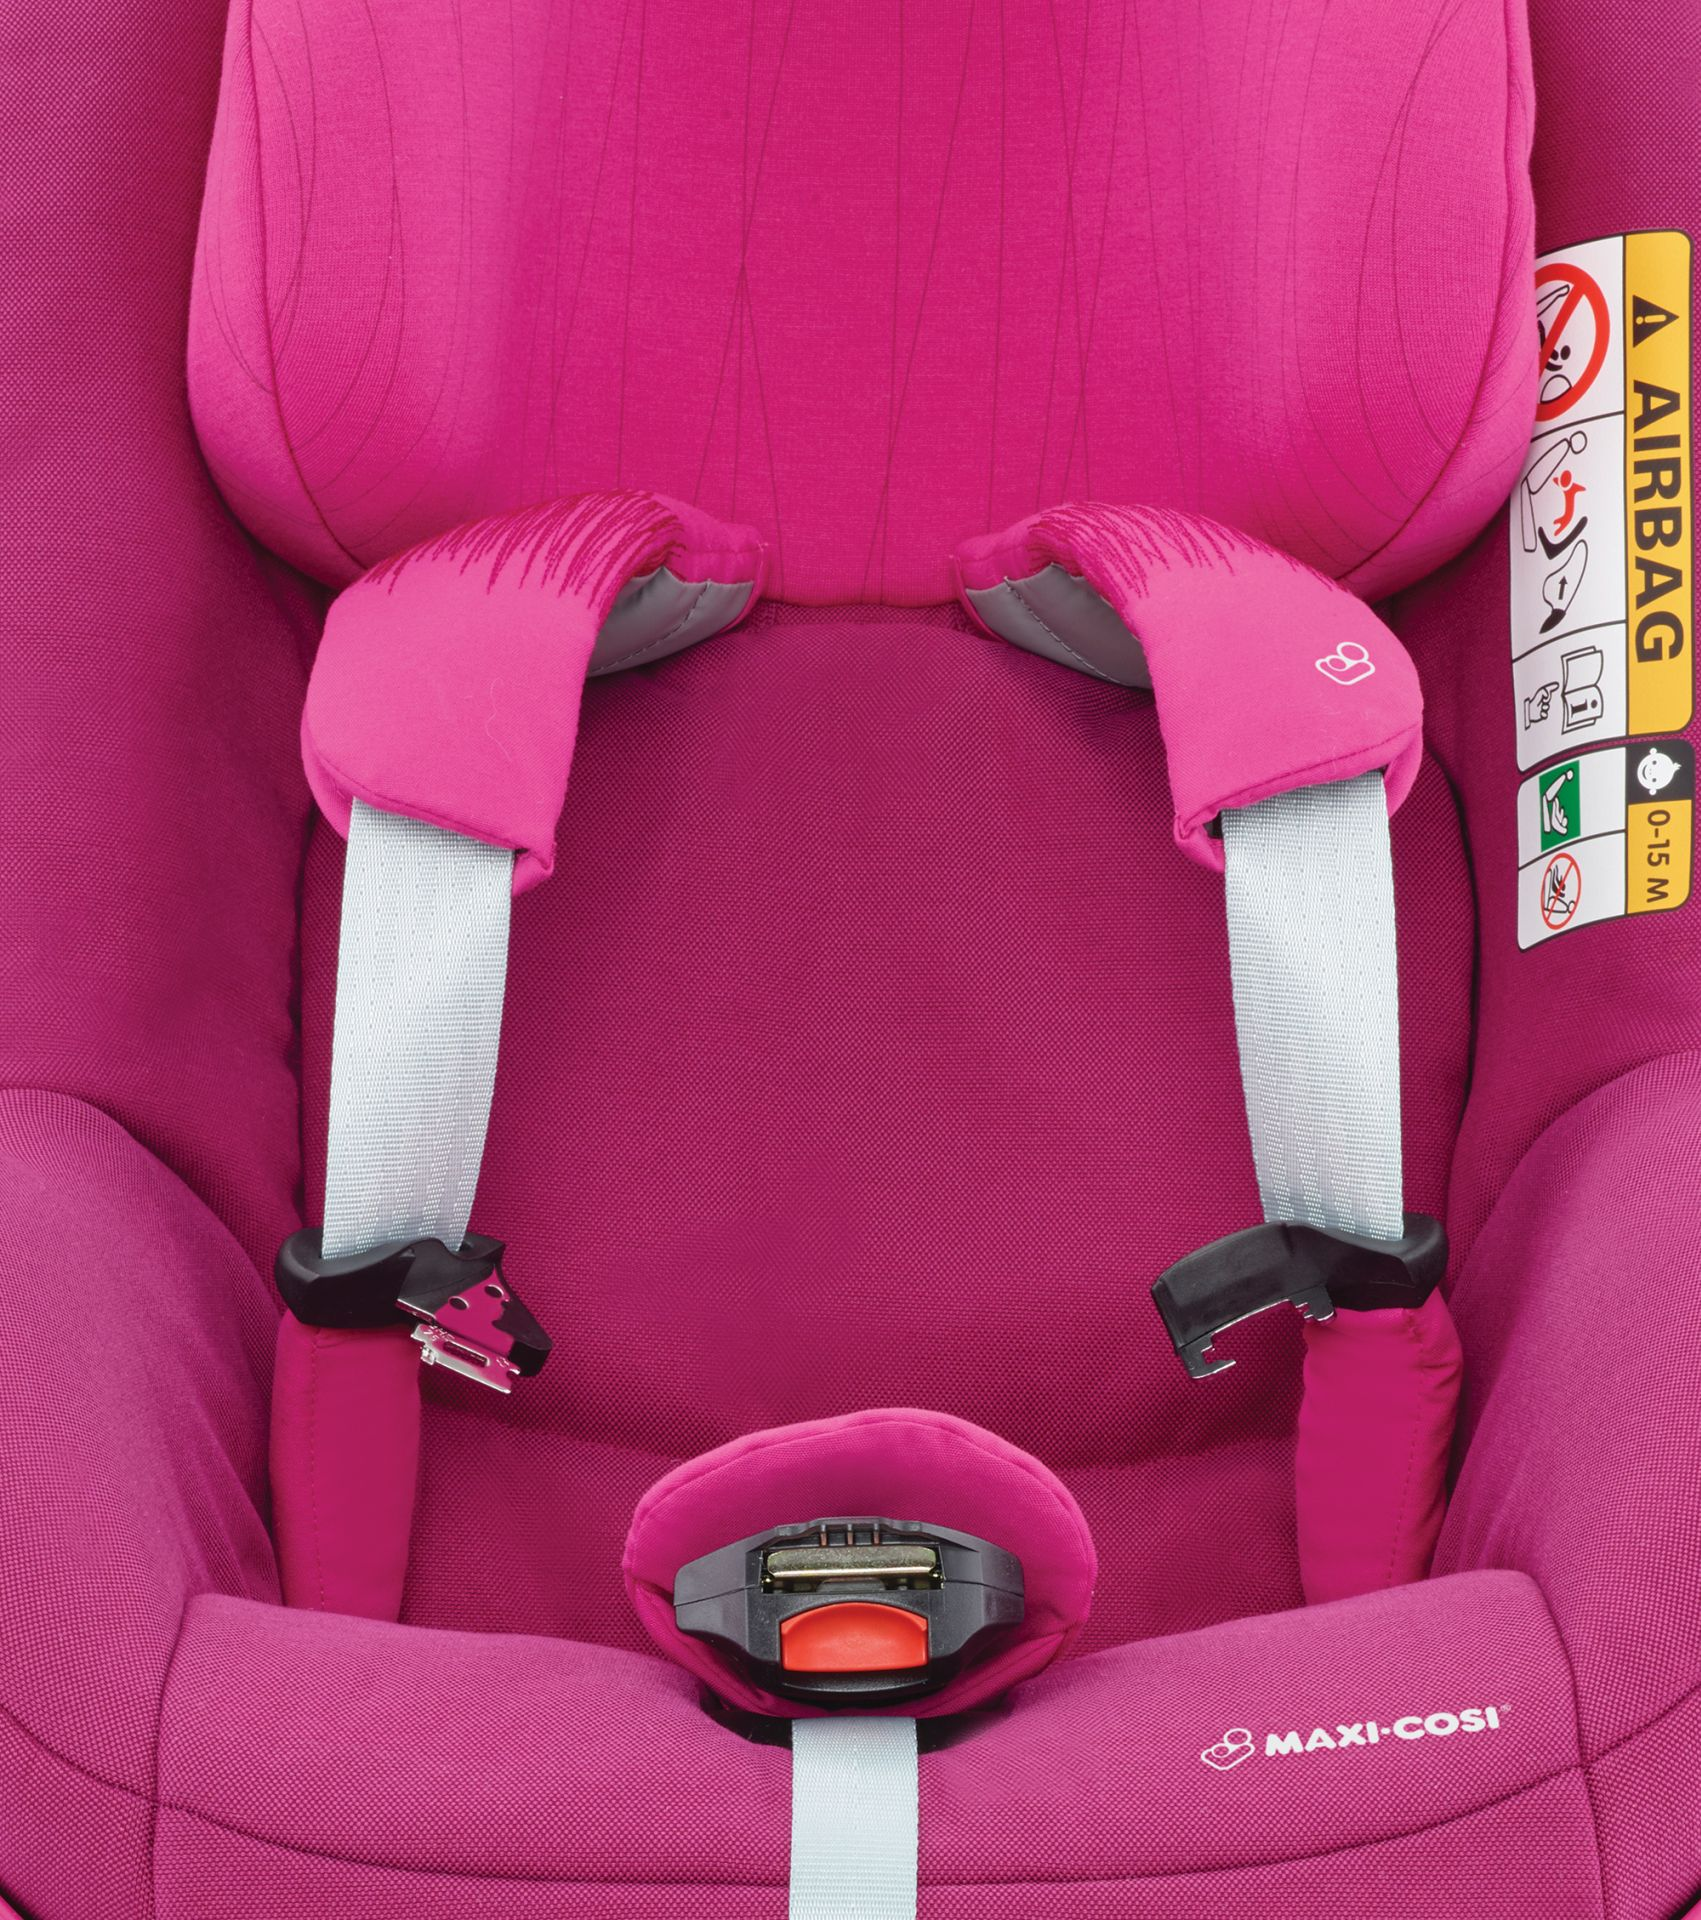 maxi cosi safety seat 2way pearl 2018 frequency pink buy at kidsroom car seats. Black Bedroom Furniture Sets. Home Design Ideas